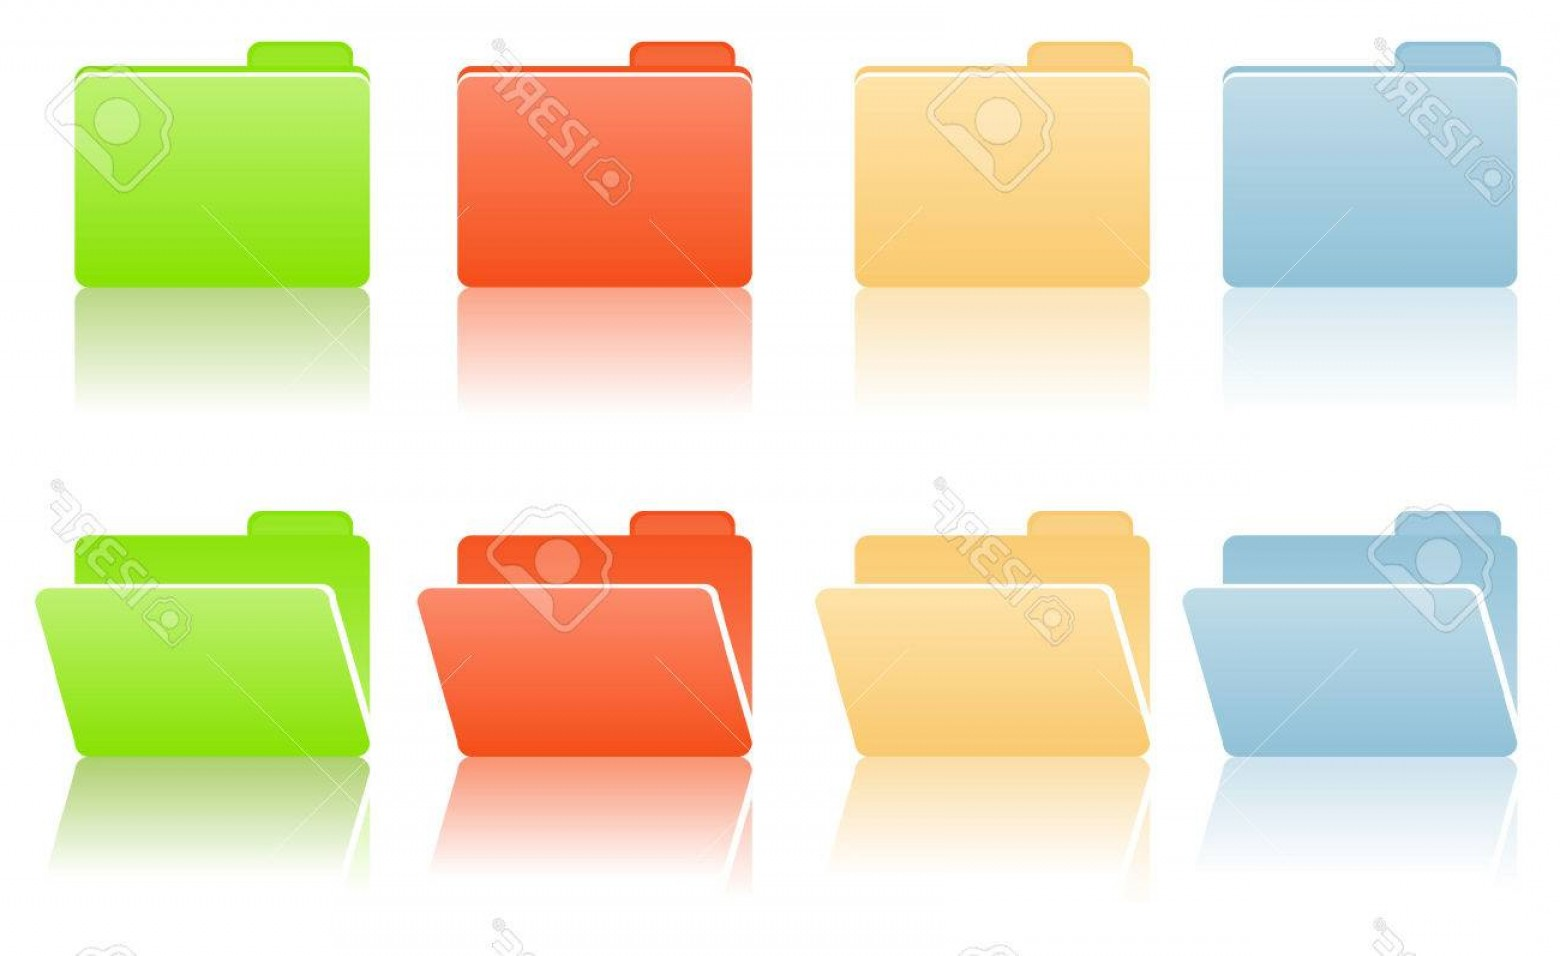 Folder Tab Vectors: Photofile Folders With Place For Label In Blue Red Yellow Green Color Tones